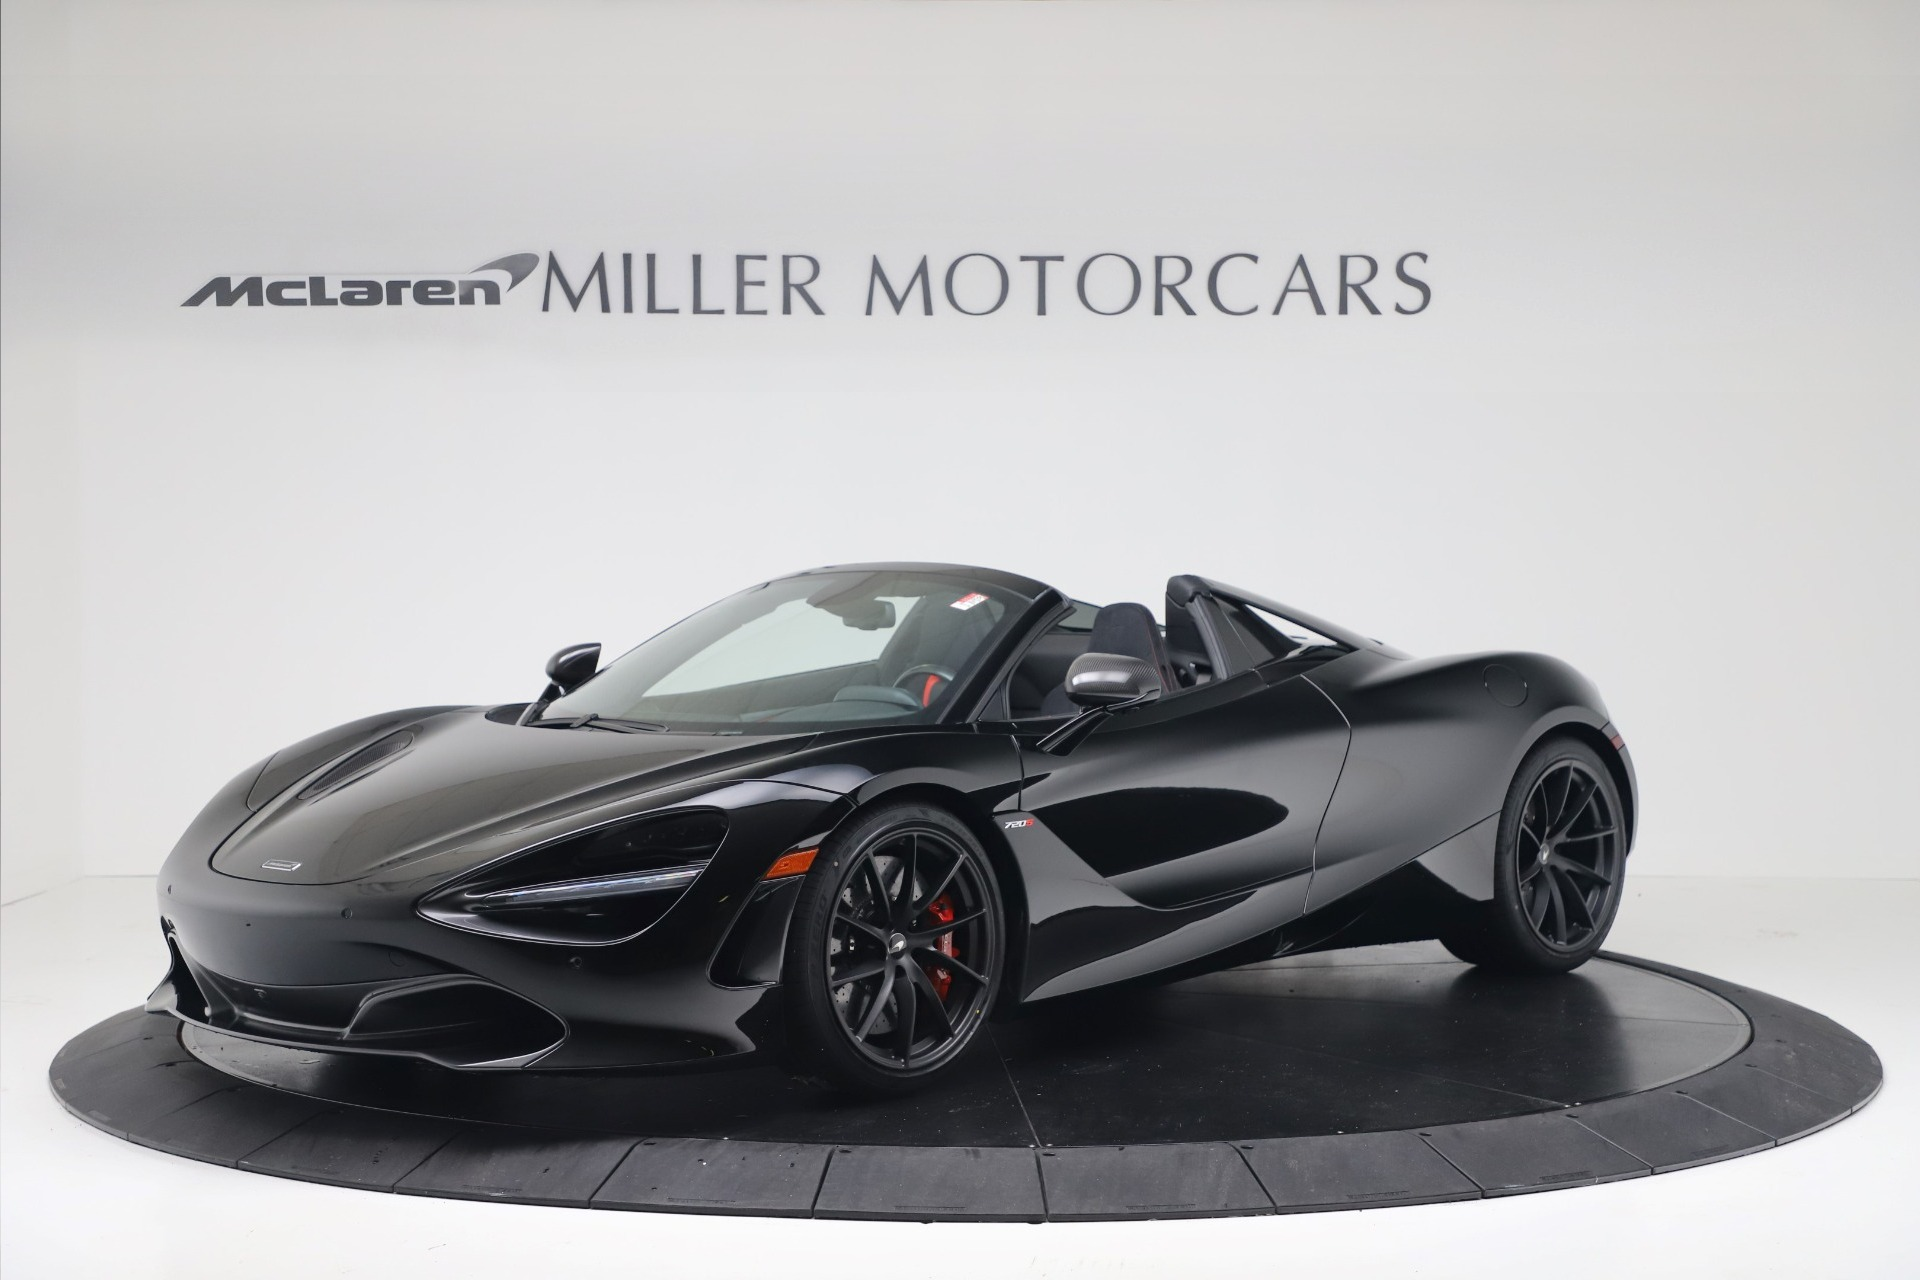 New 2020 McLaren 720S Spider Convertible for sale $383,090 at Bentley Greenwich in Greenwich CT 06830 1